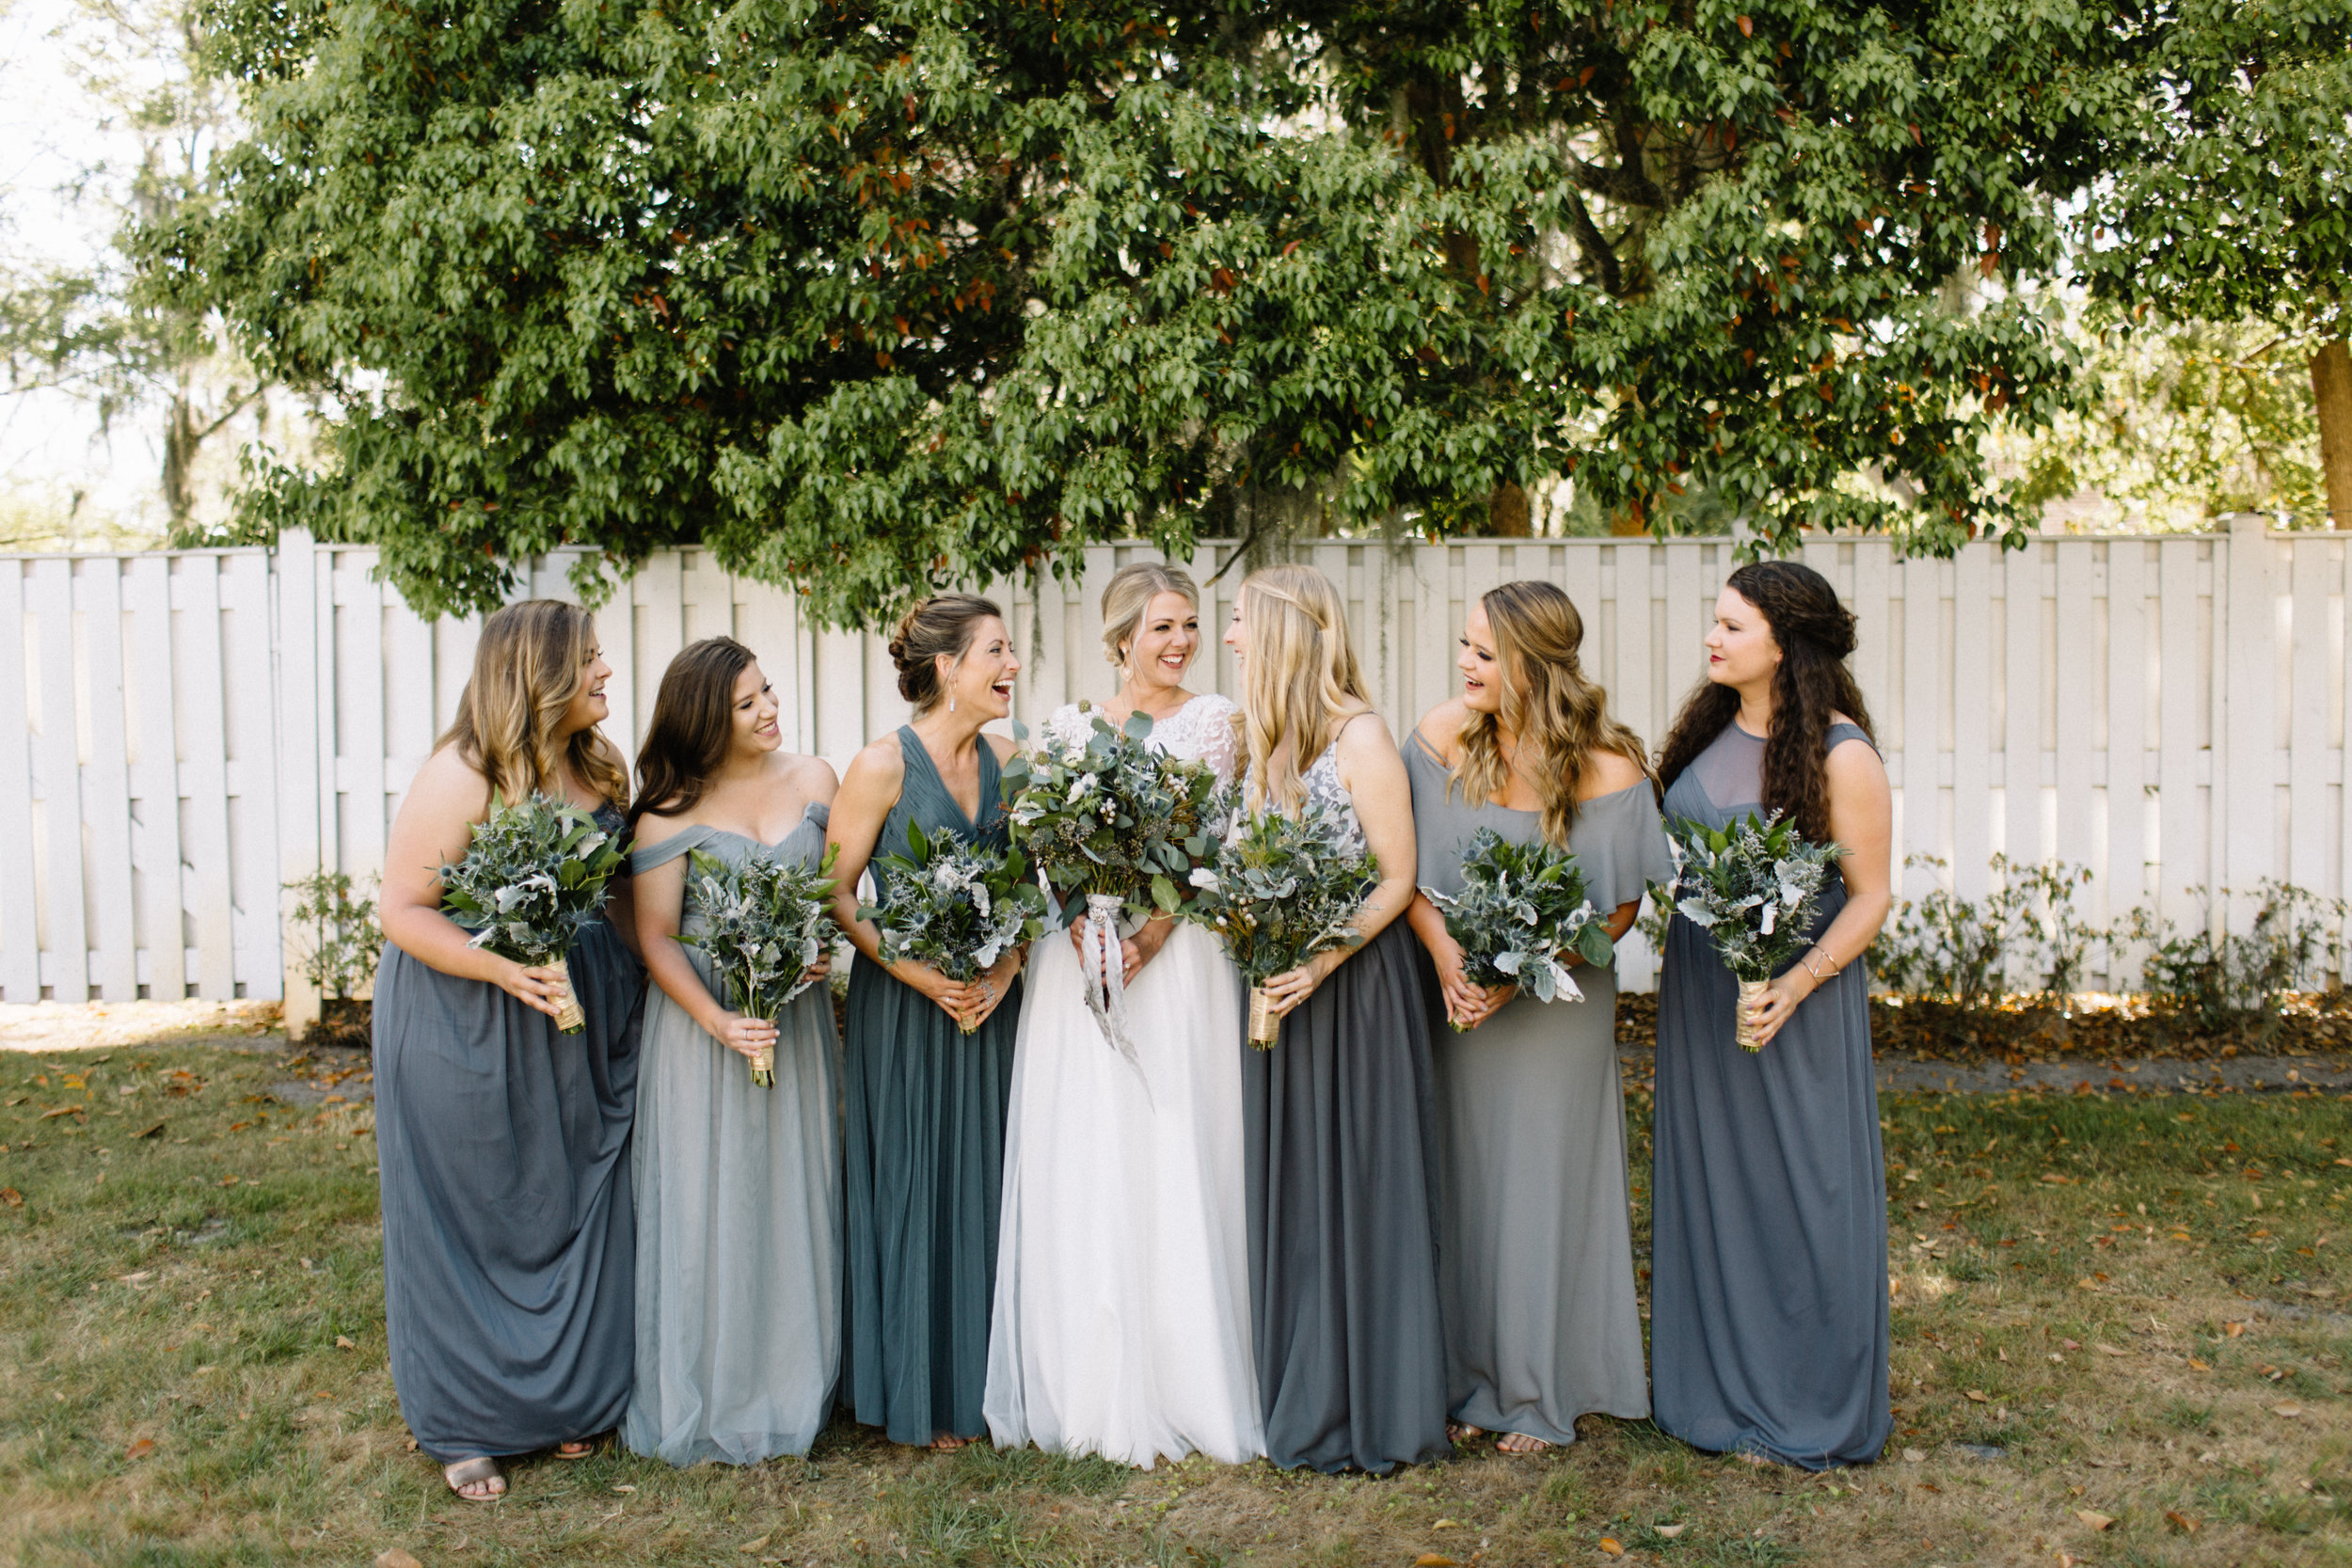 CREATING A WEDDING BOUQUET (via: JacinthaPayne.com)